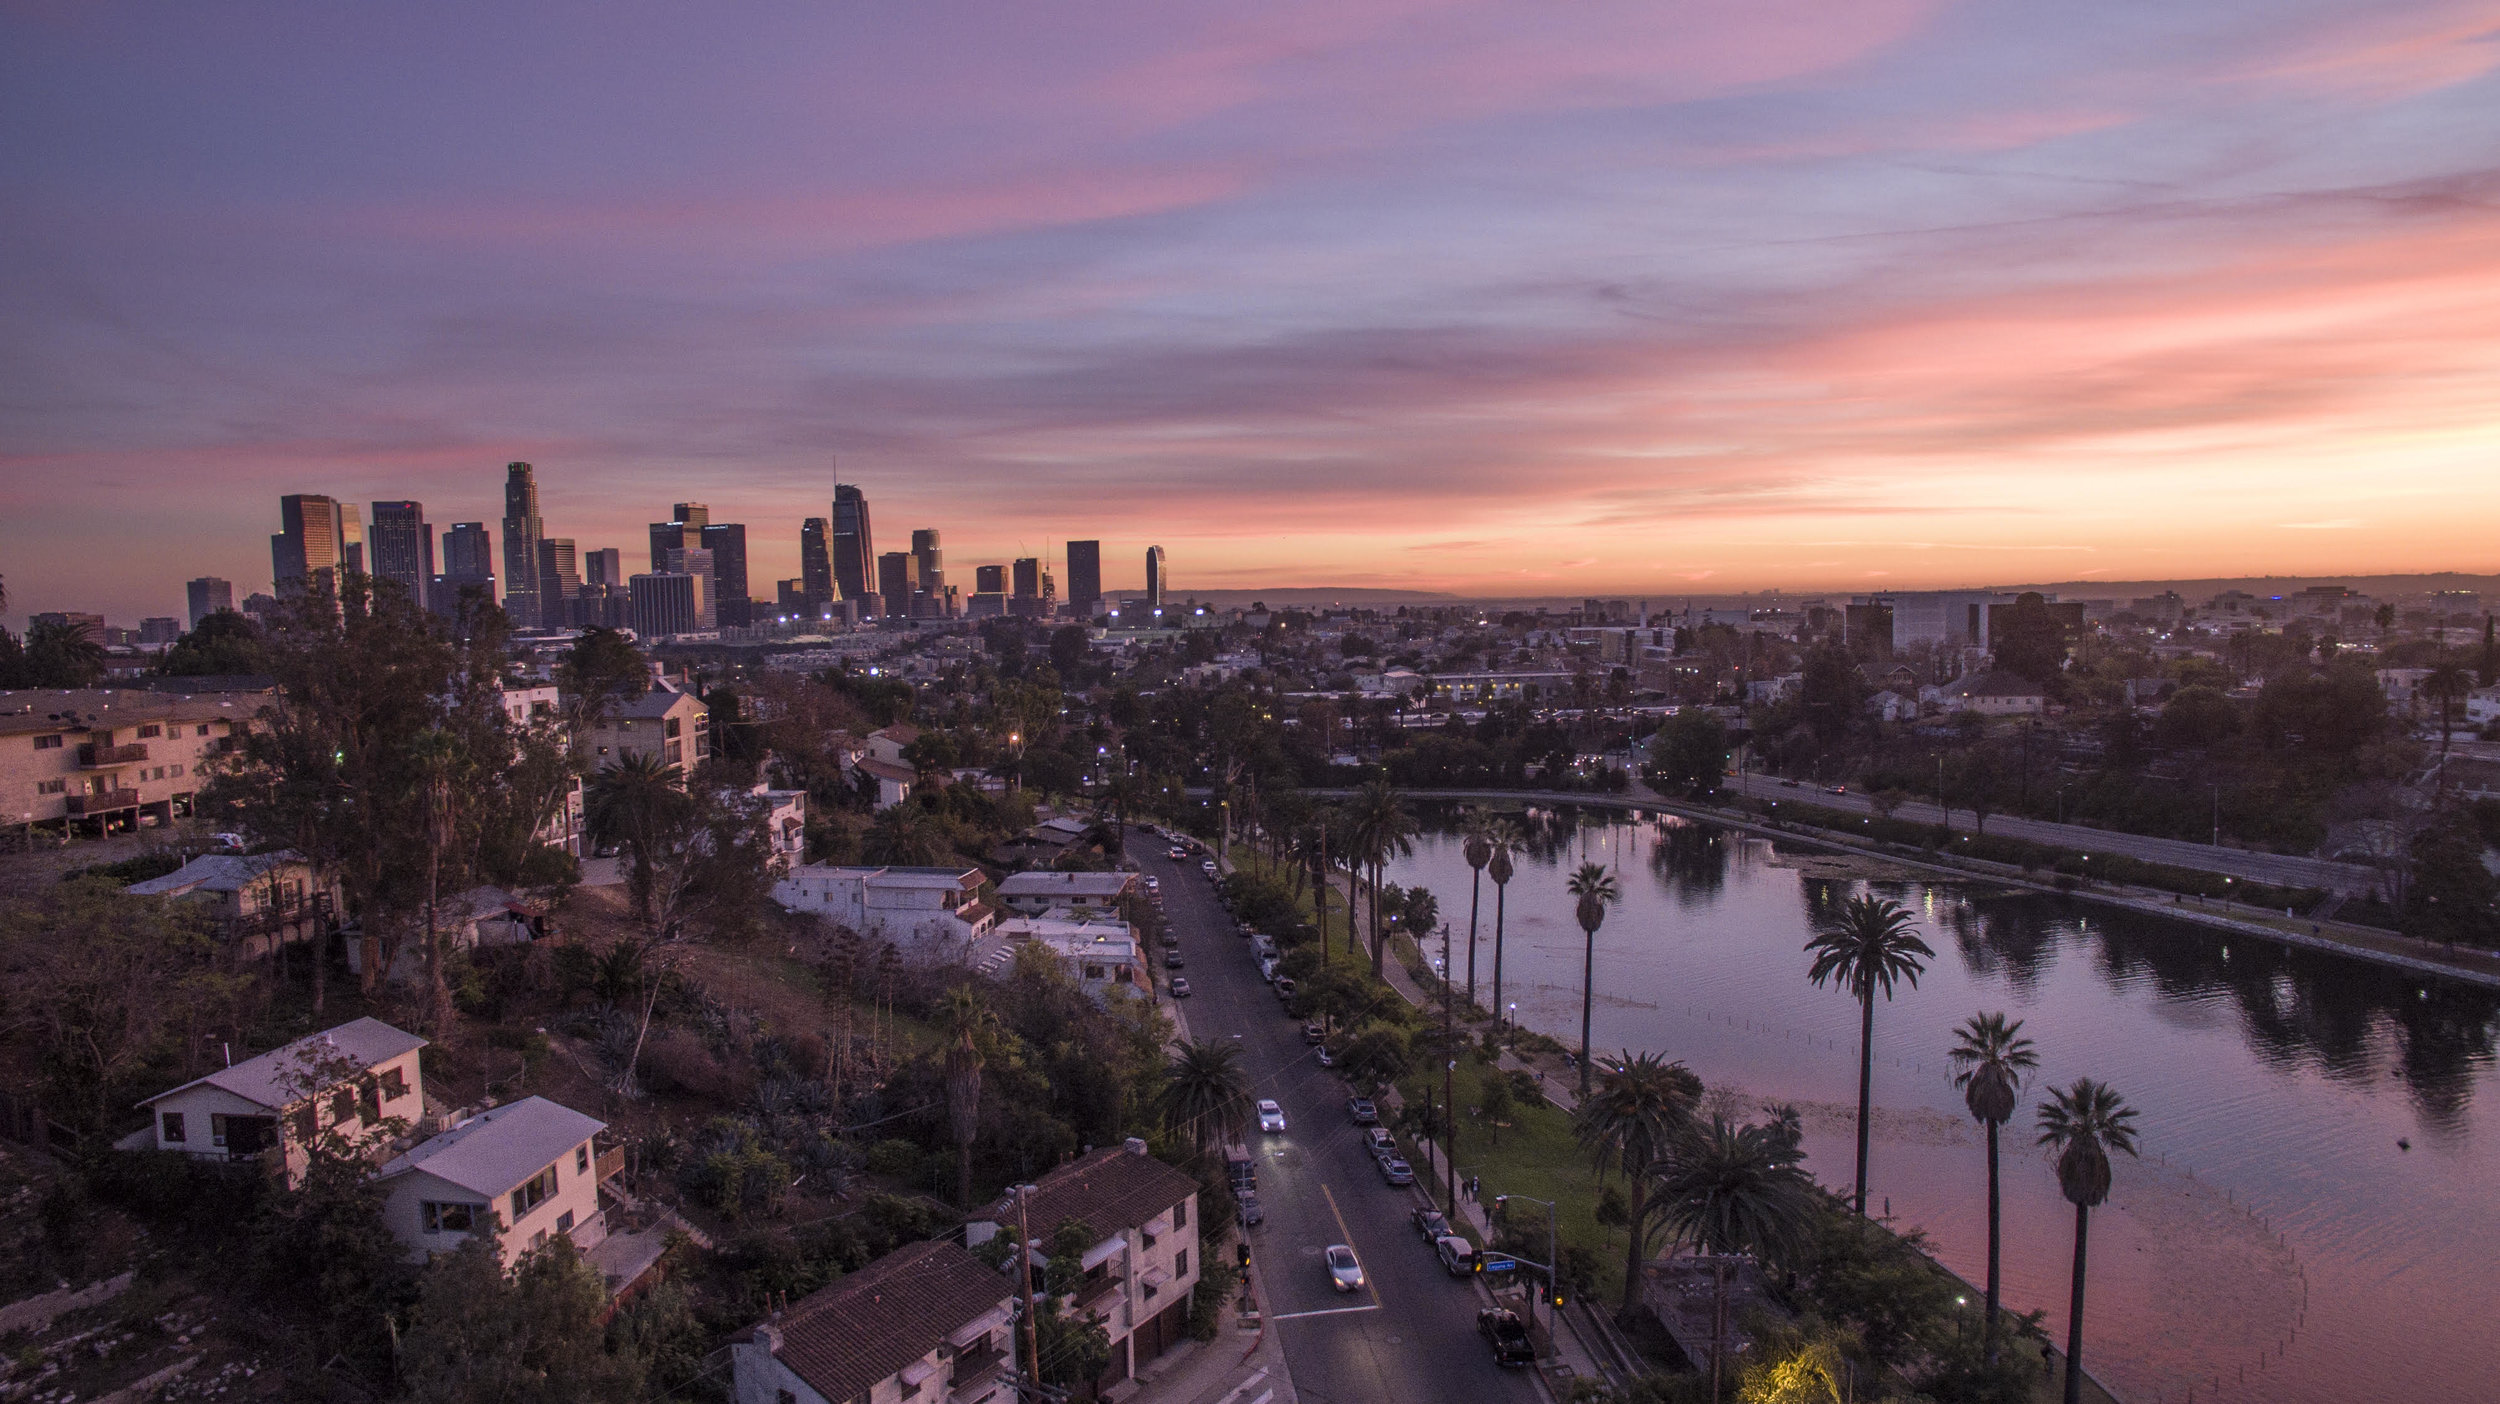 Interested in buying in Los Angeles? - Email me at andrew@plgestates.com so I can get started on finding the perfect home for you!